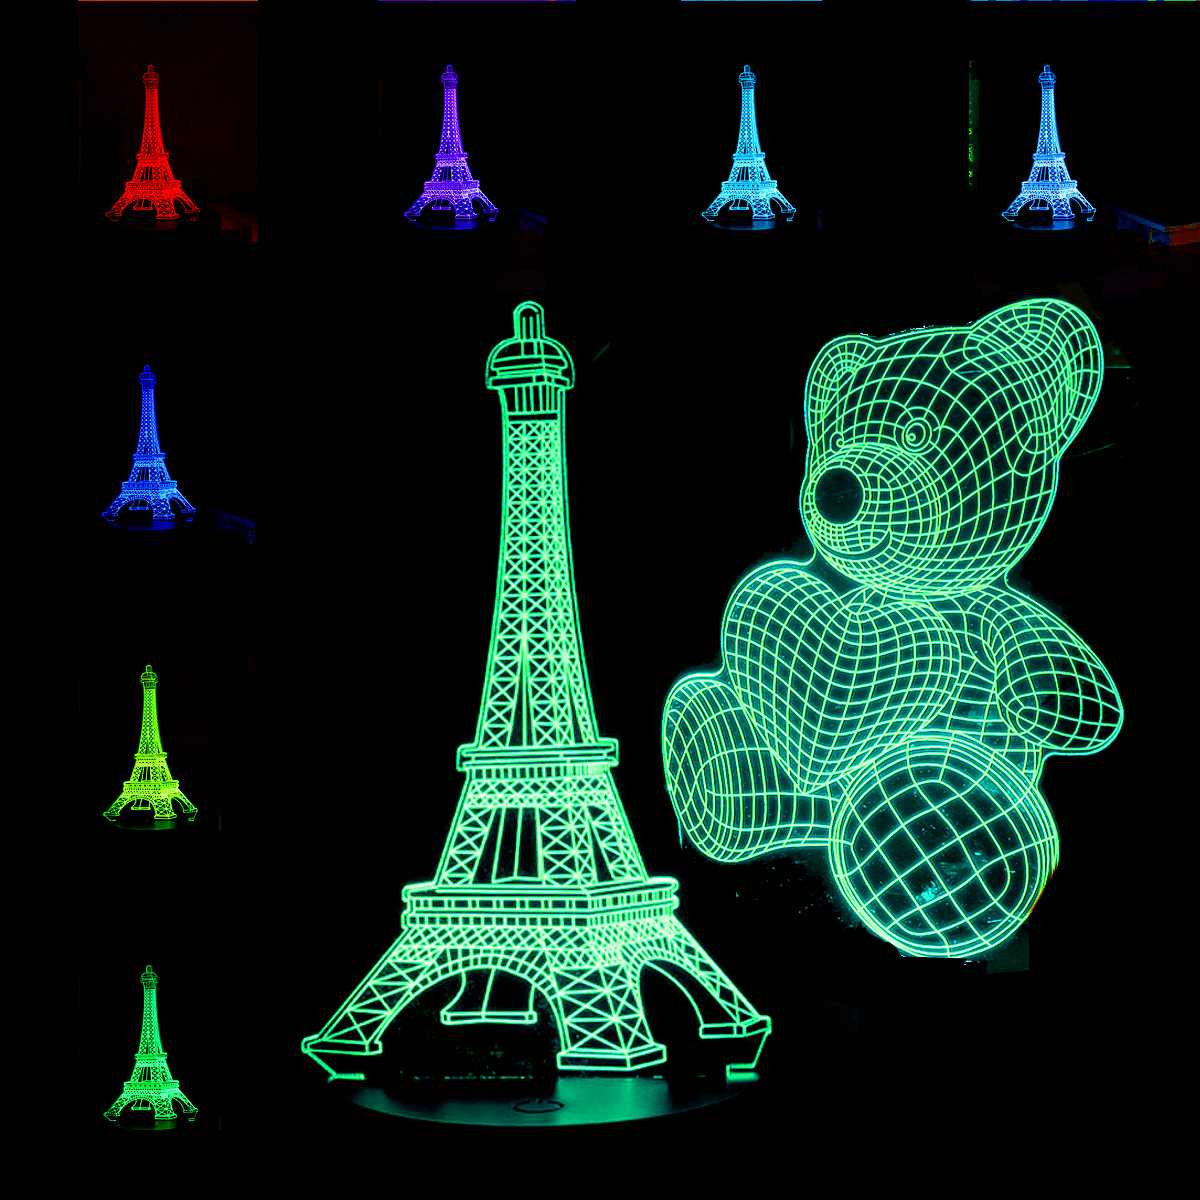 Baby Teddy Bear/Eiffel Tower 3D LED Night Light  Acrylic Board Plate Home Room Decor Kids Toy Christmas Gift